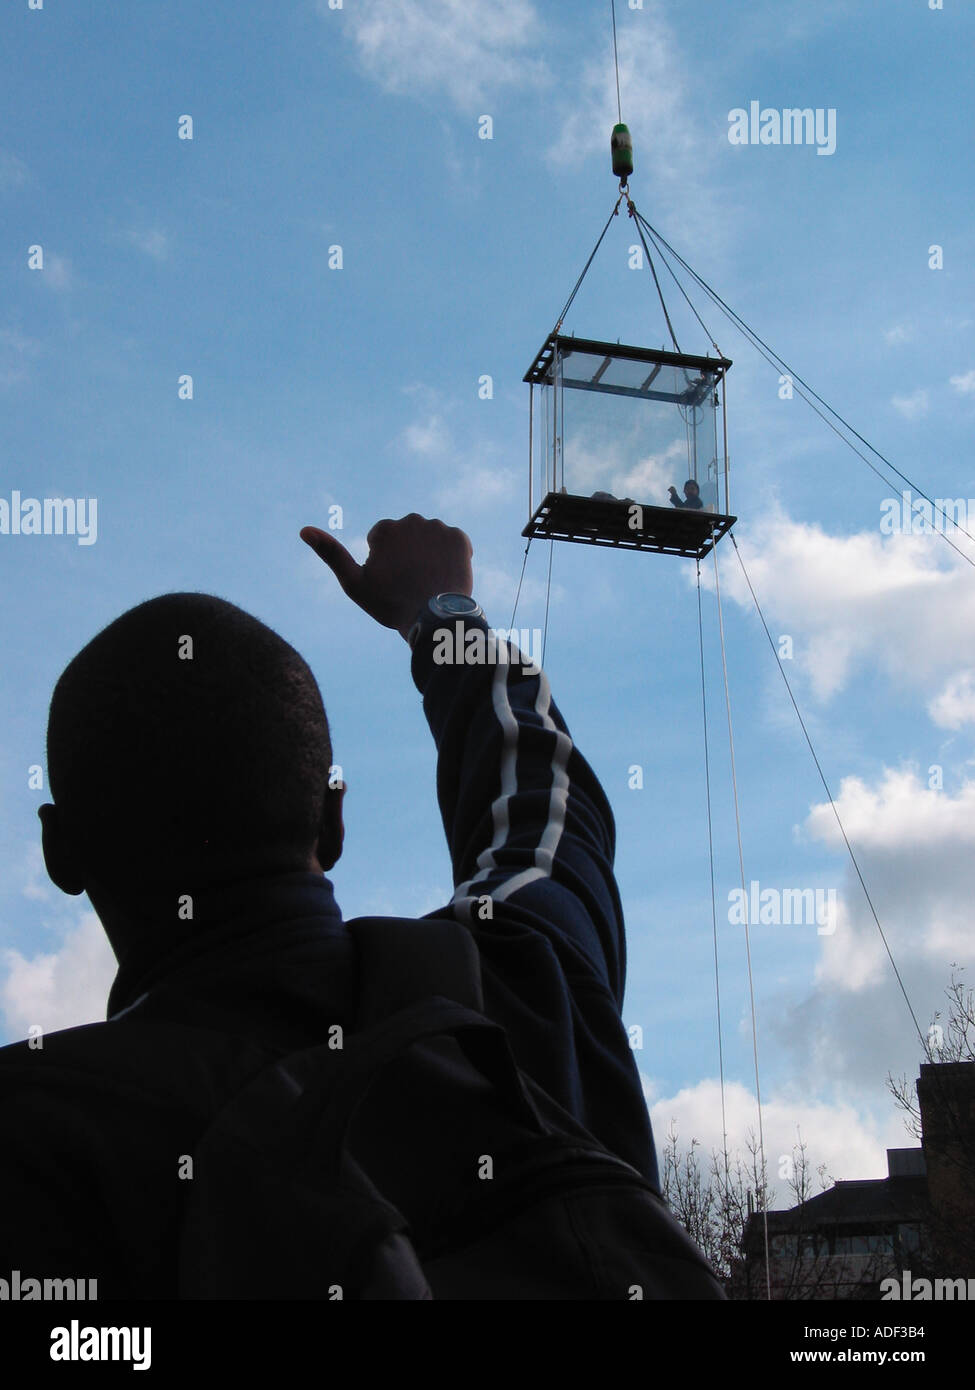 44 Days Suspended in a Plexi Glass Box David Blane Well Wishers Support Last Day Sunday 19th October 2003 London England GB - Stock Image